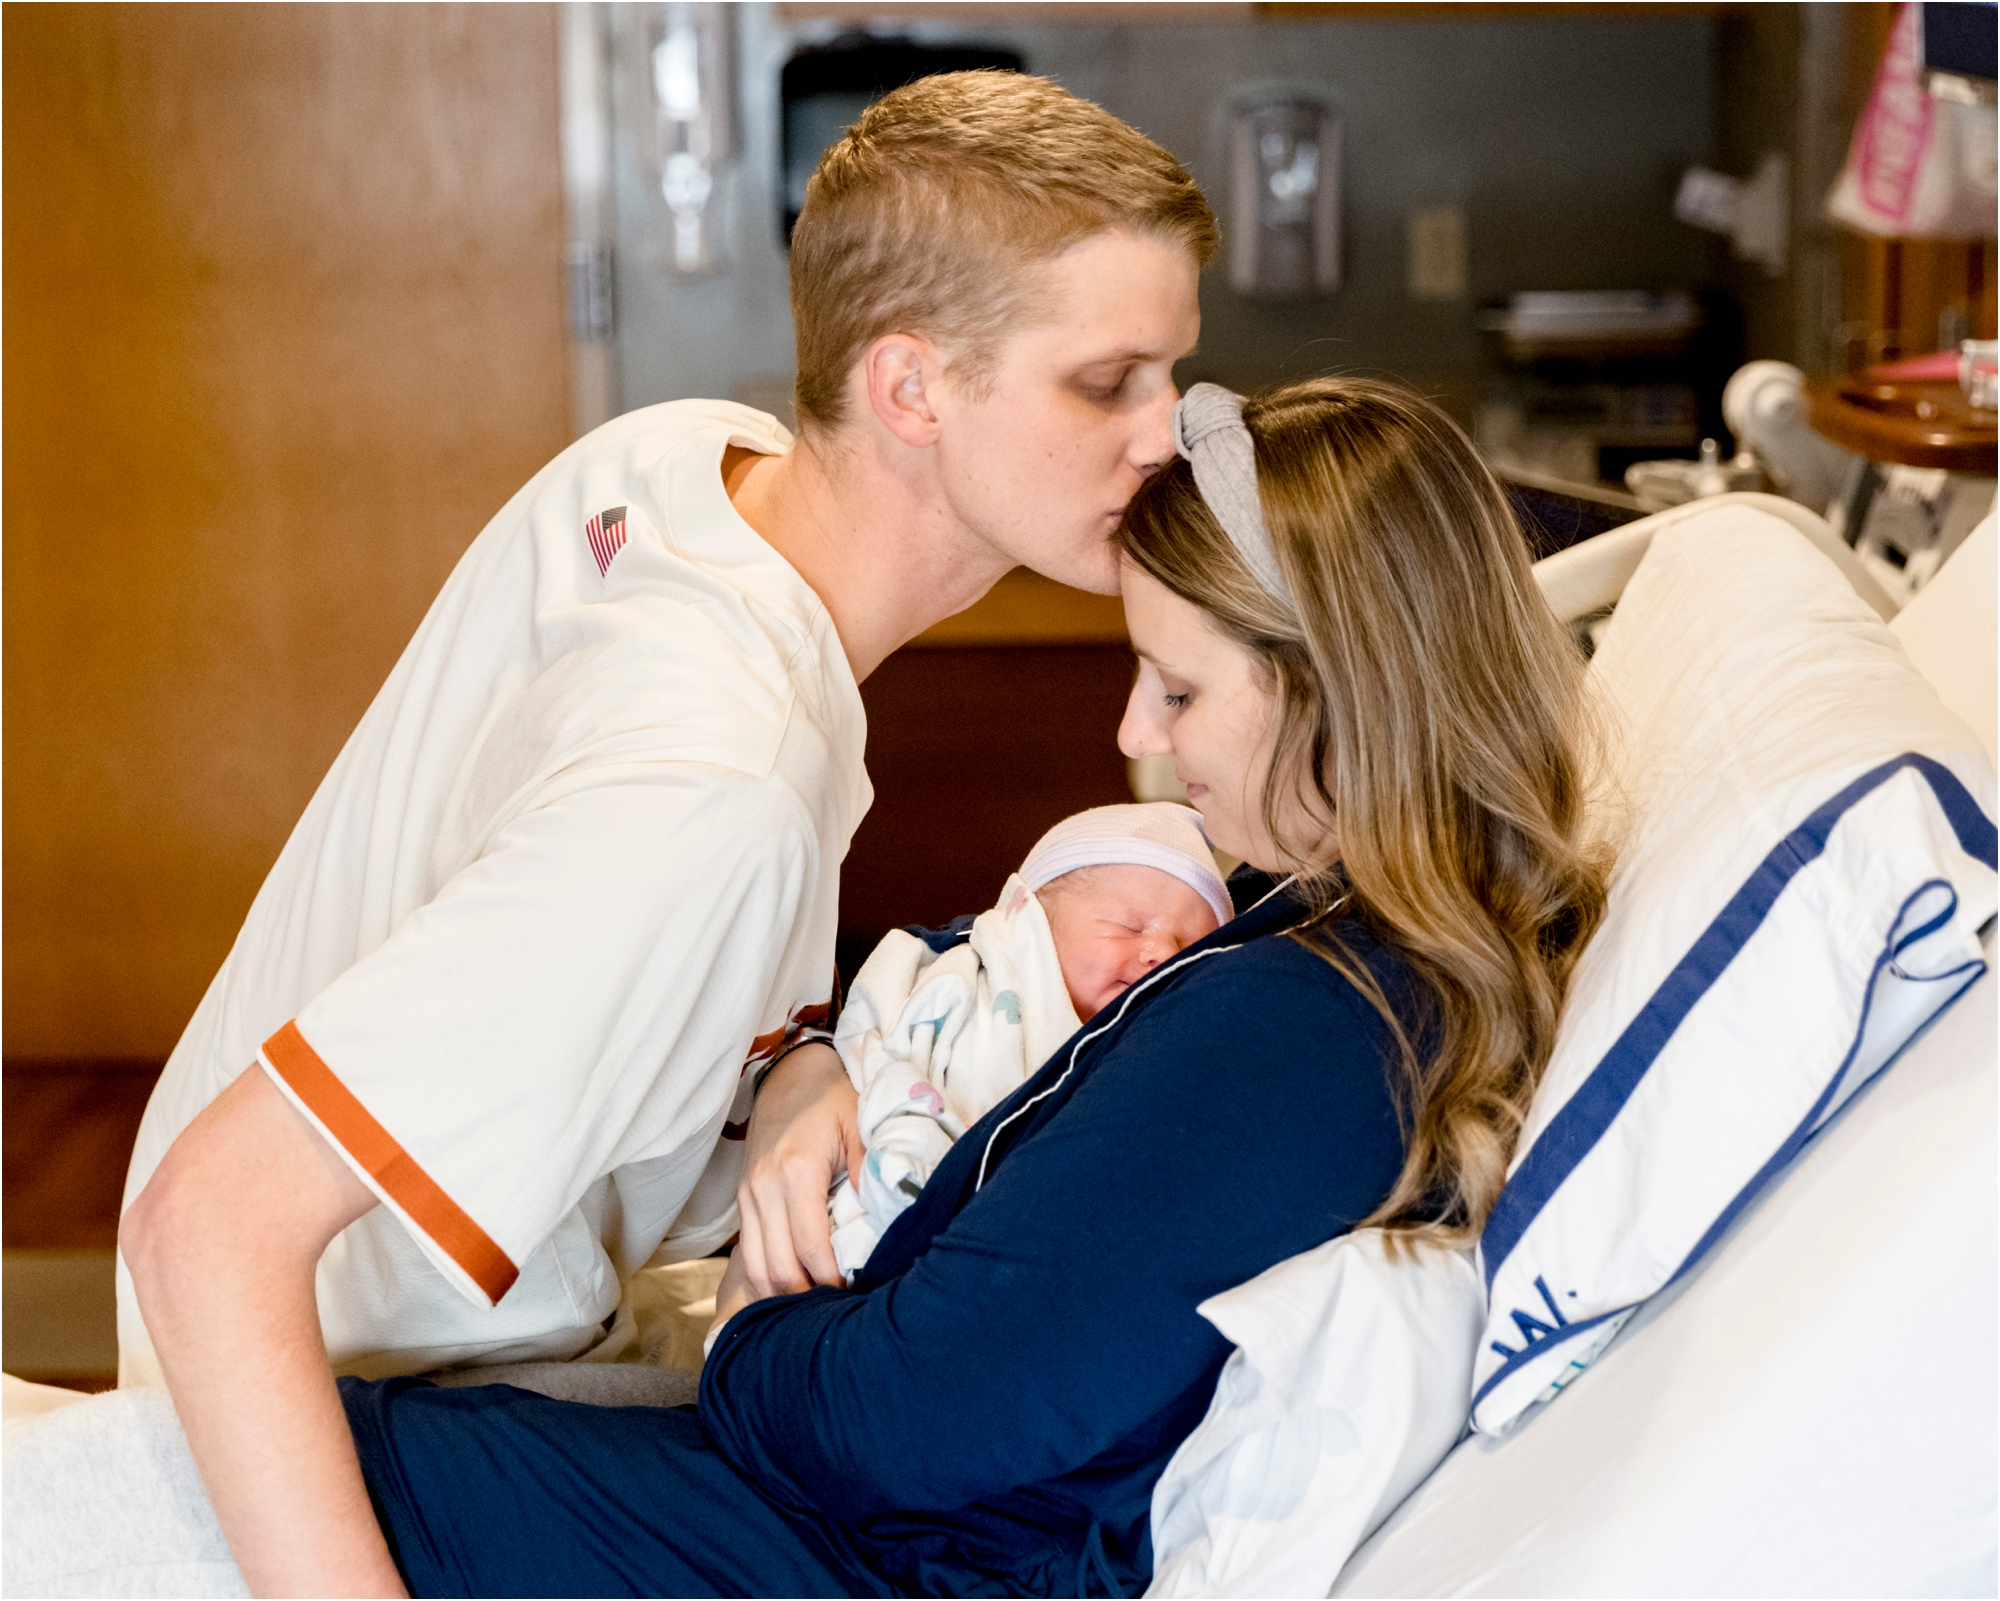 Dad kissing Mom's forehead as she holds baby in hospital room. Photo by Lifetime of Clicks Photography.